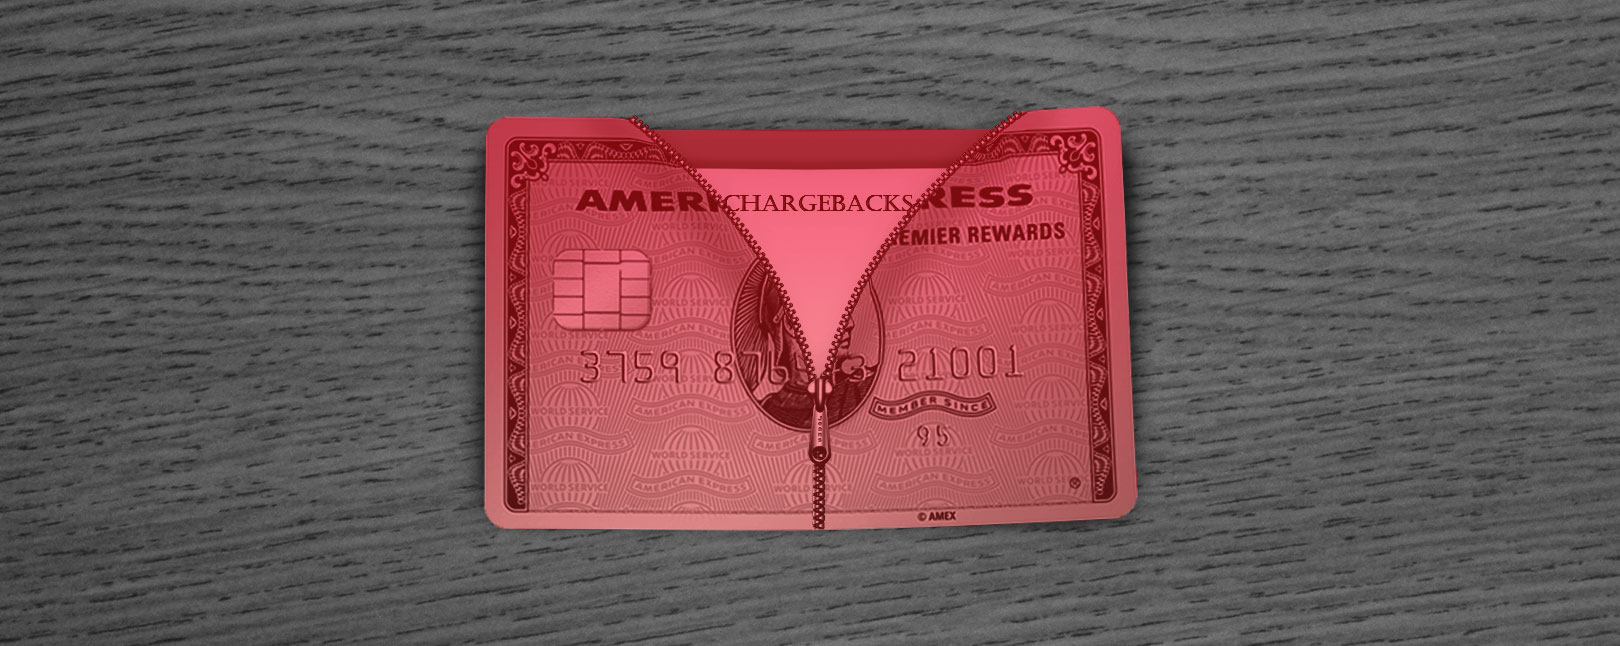 Why American Express Chargebacks are Different